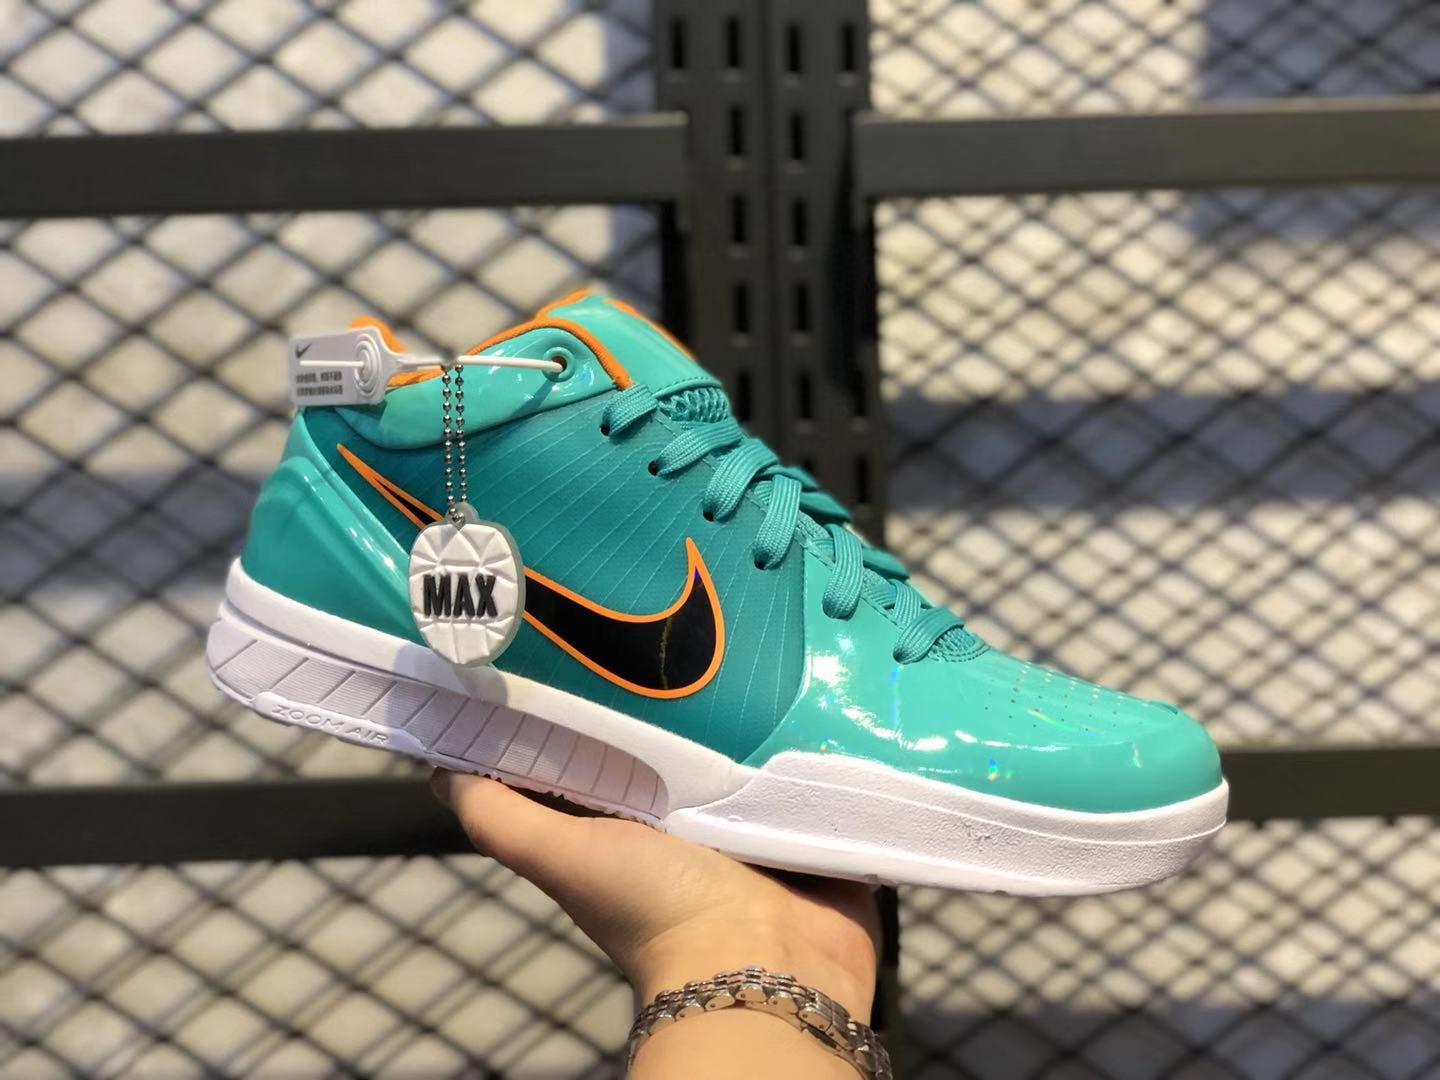 Undefeated x Nike Zoom Kobe 4 Protro Teal/Mango-White Top Shoes For Sale